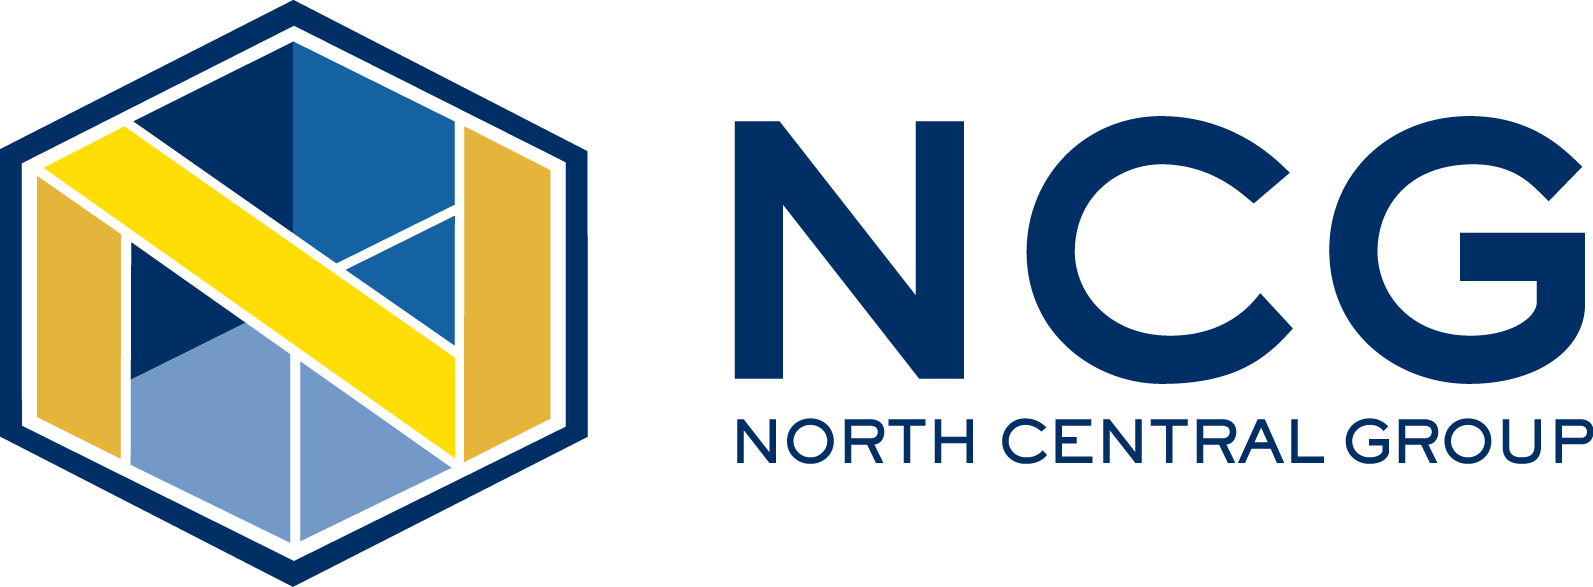 North Central Group